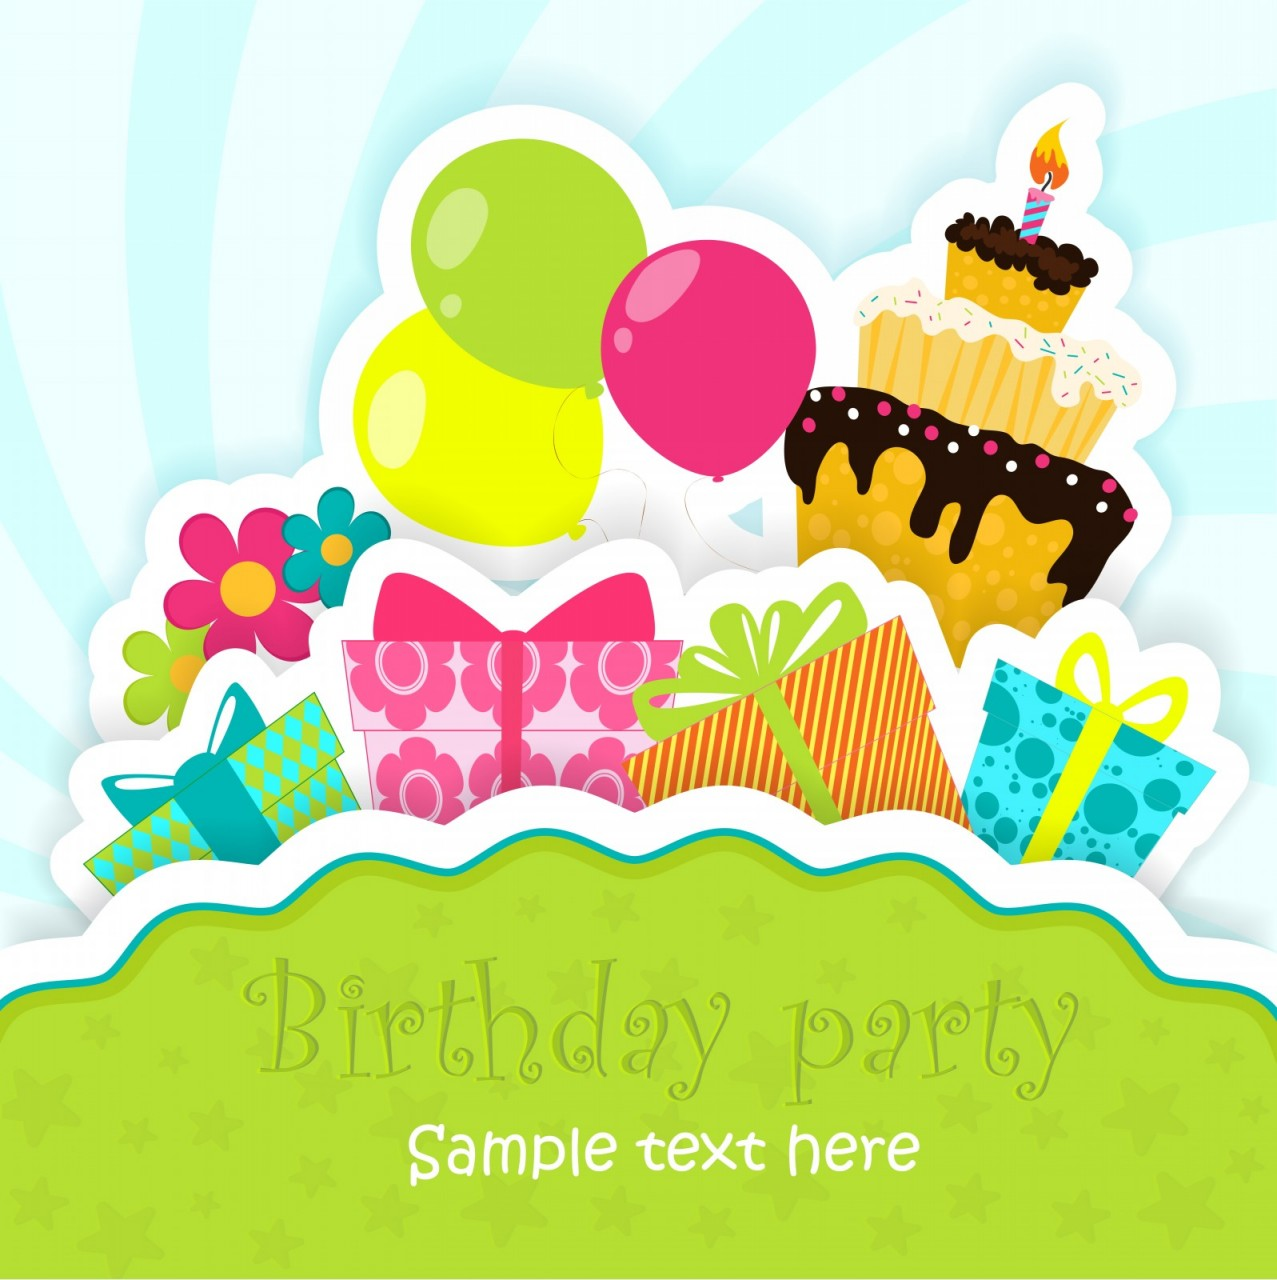 Birthday greeting card with cake, gifts, balloons, flowers